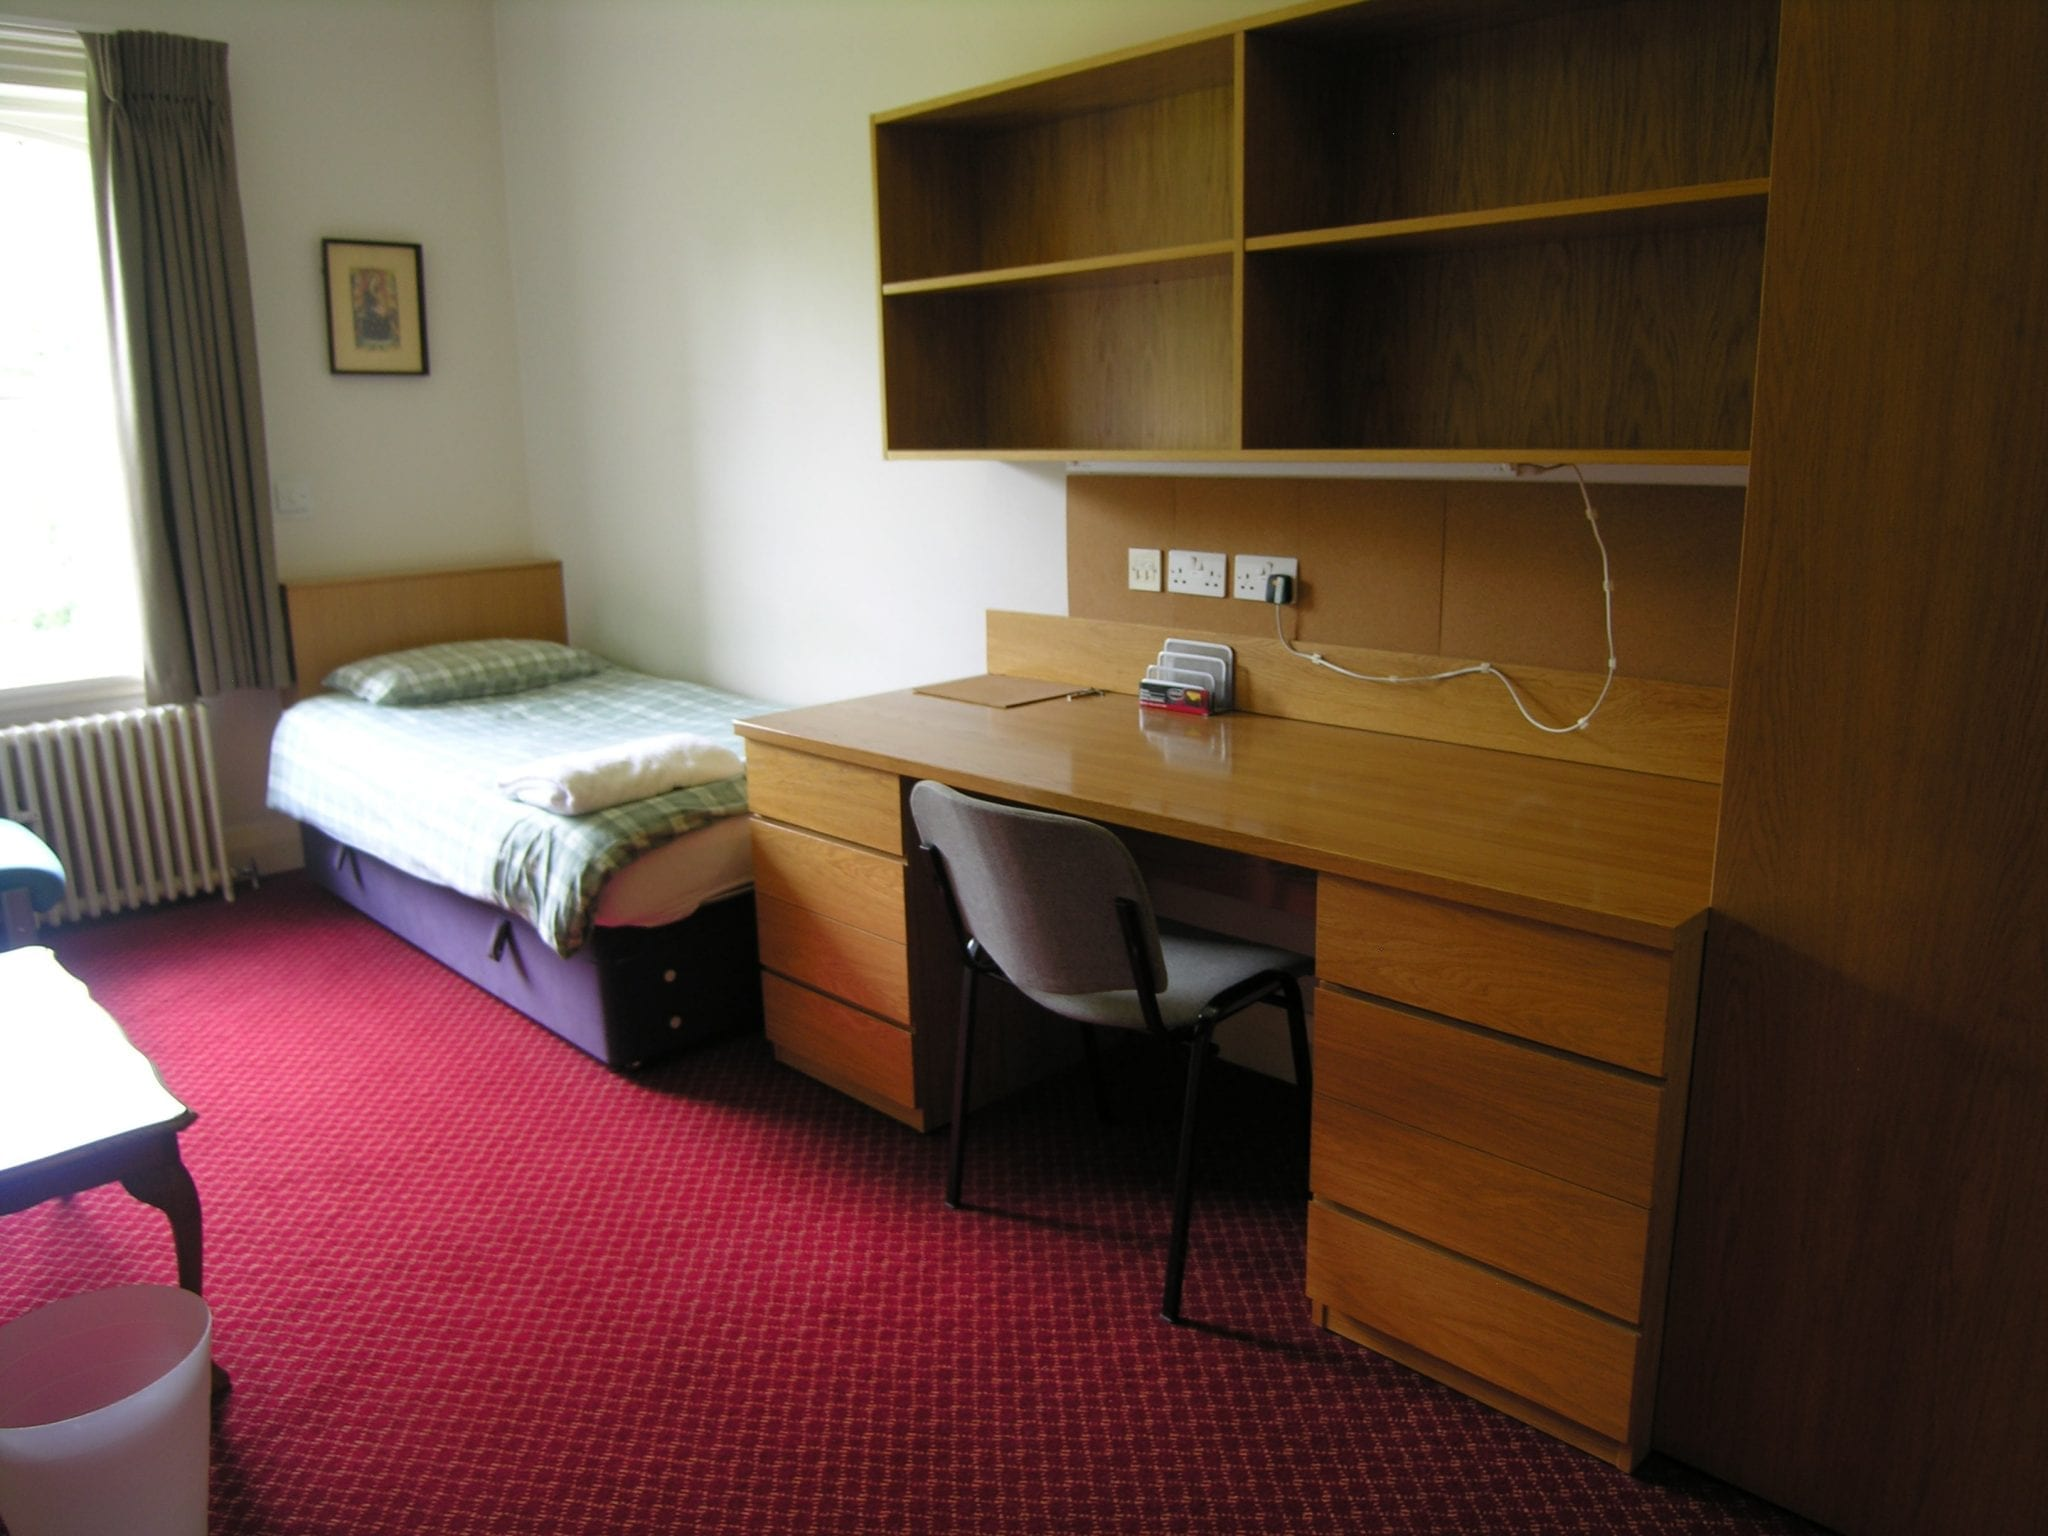 Student accommodation in Manchester